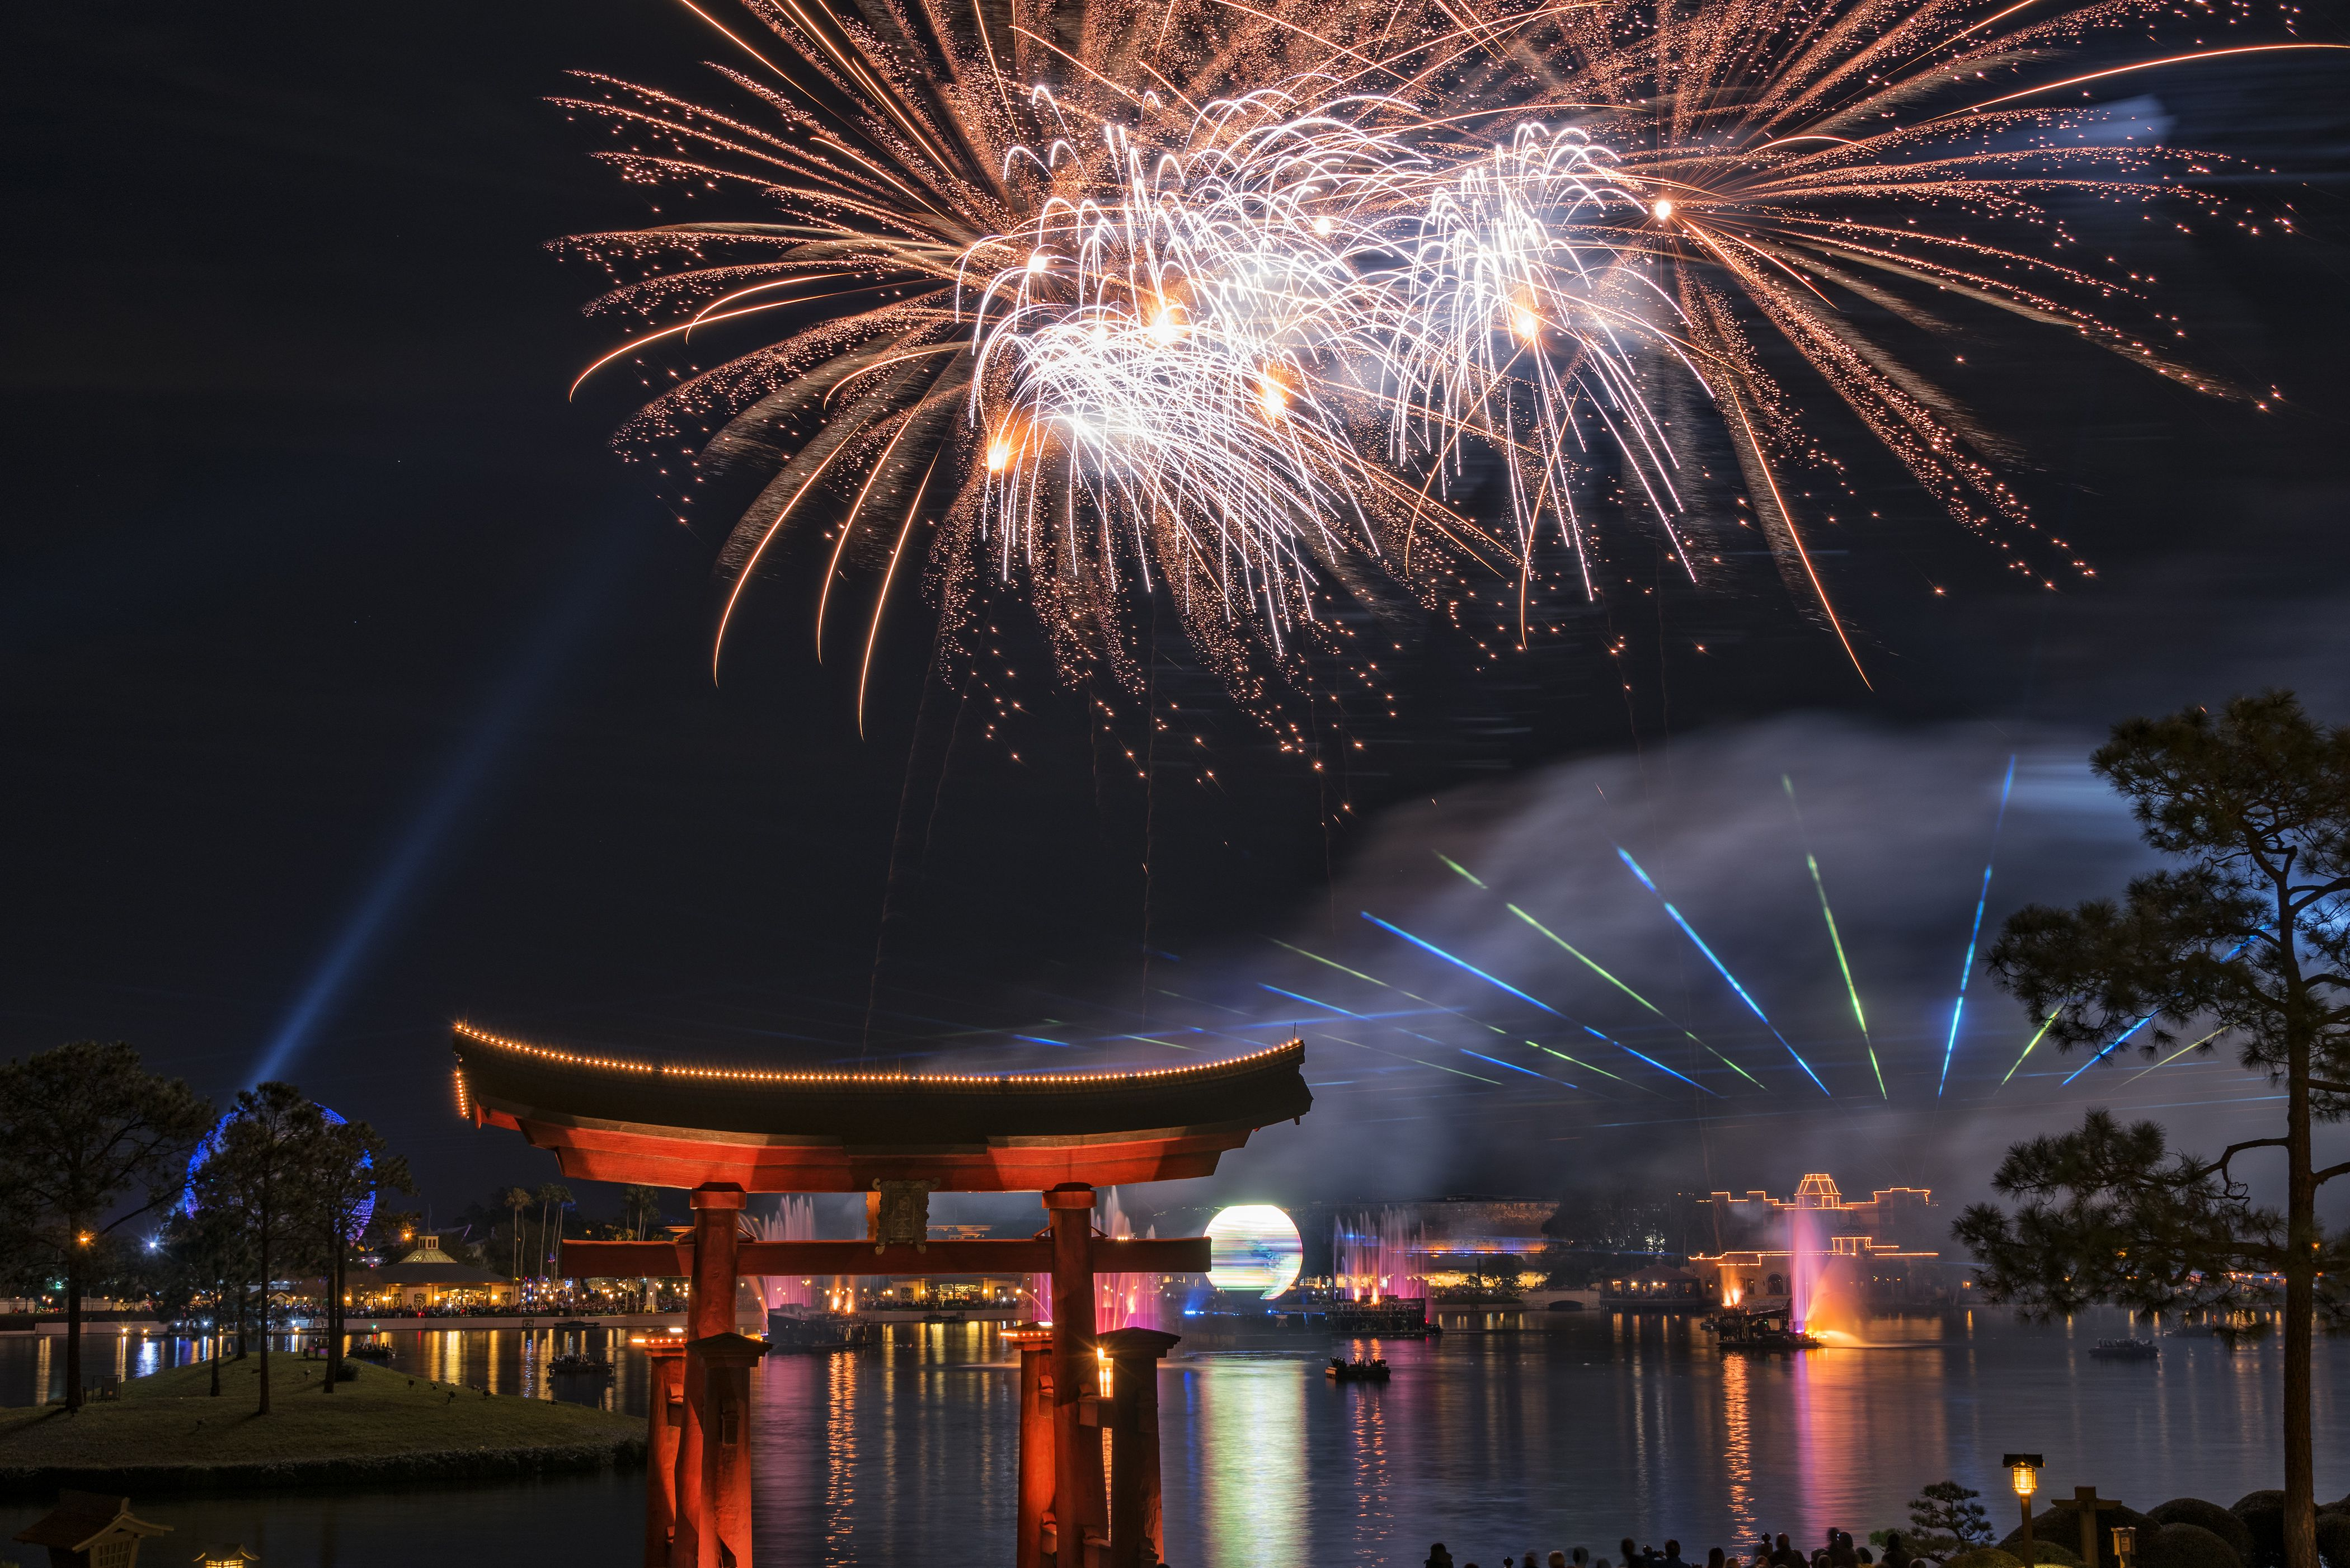 Fireworks Show at Epcot Center in Disney World